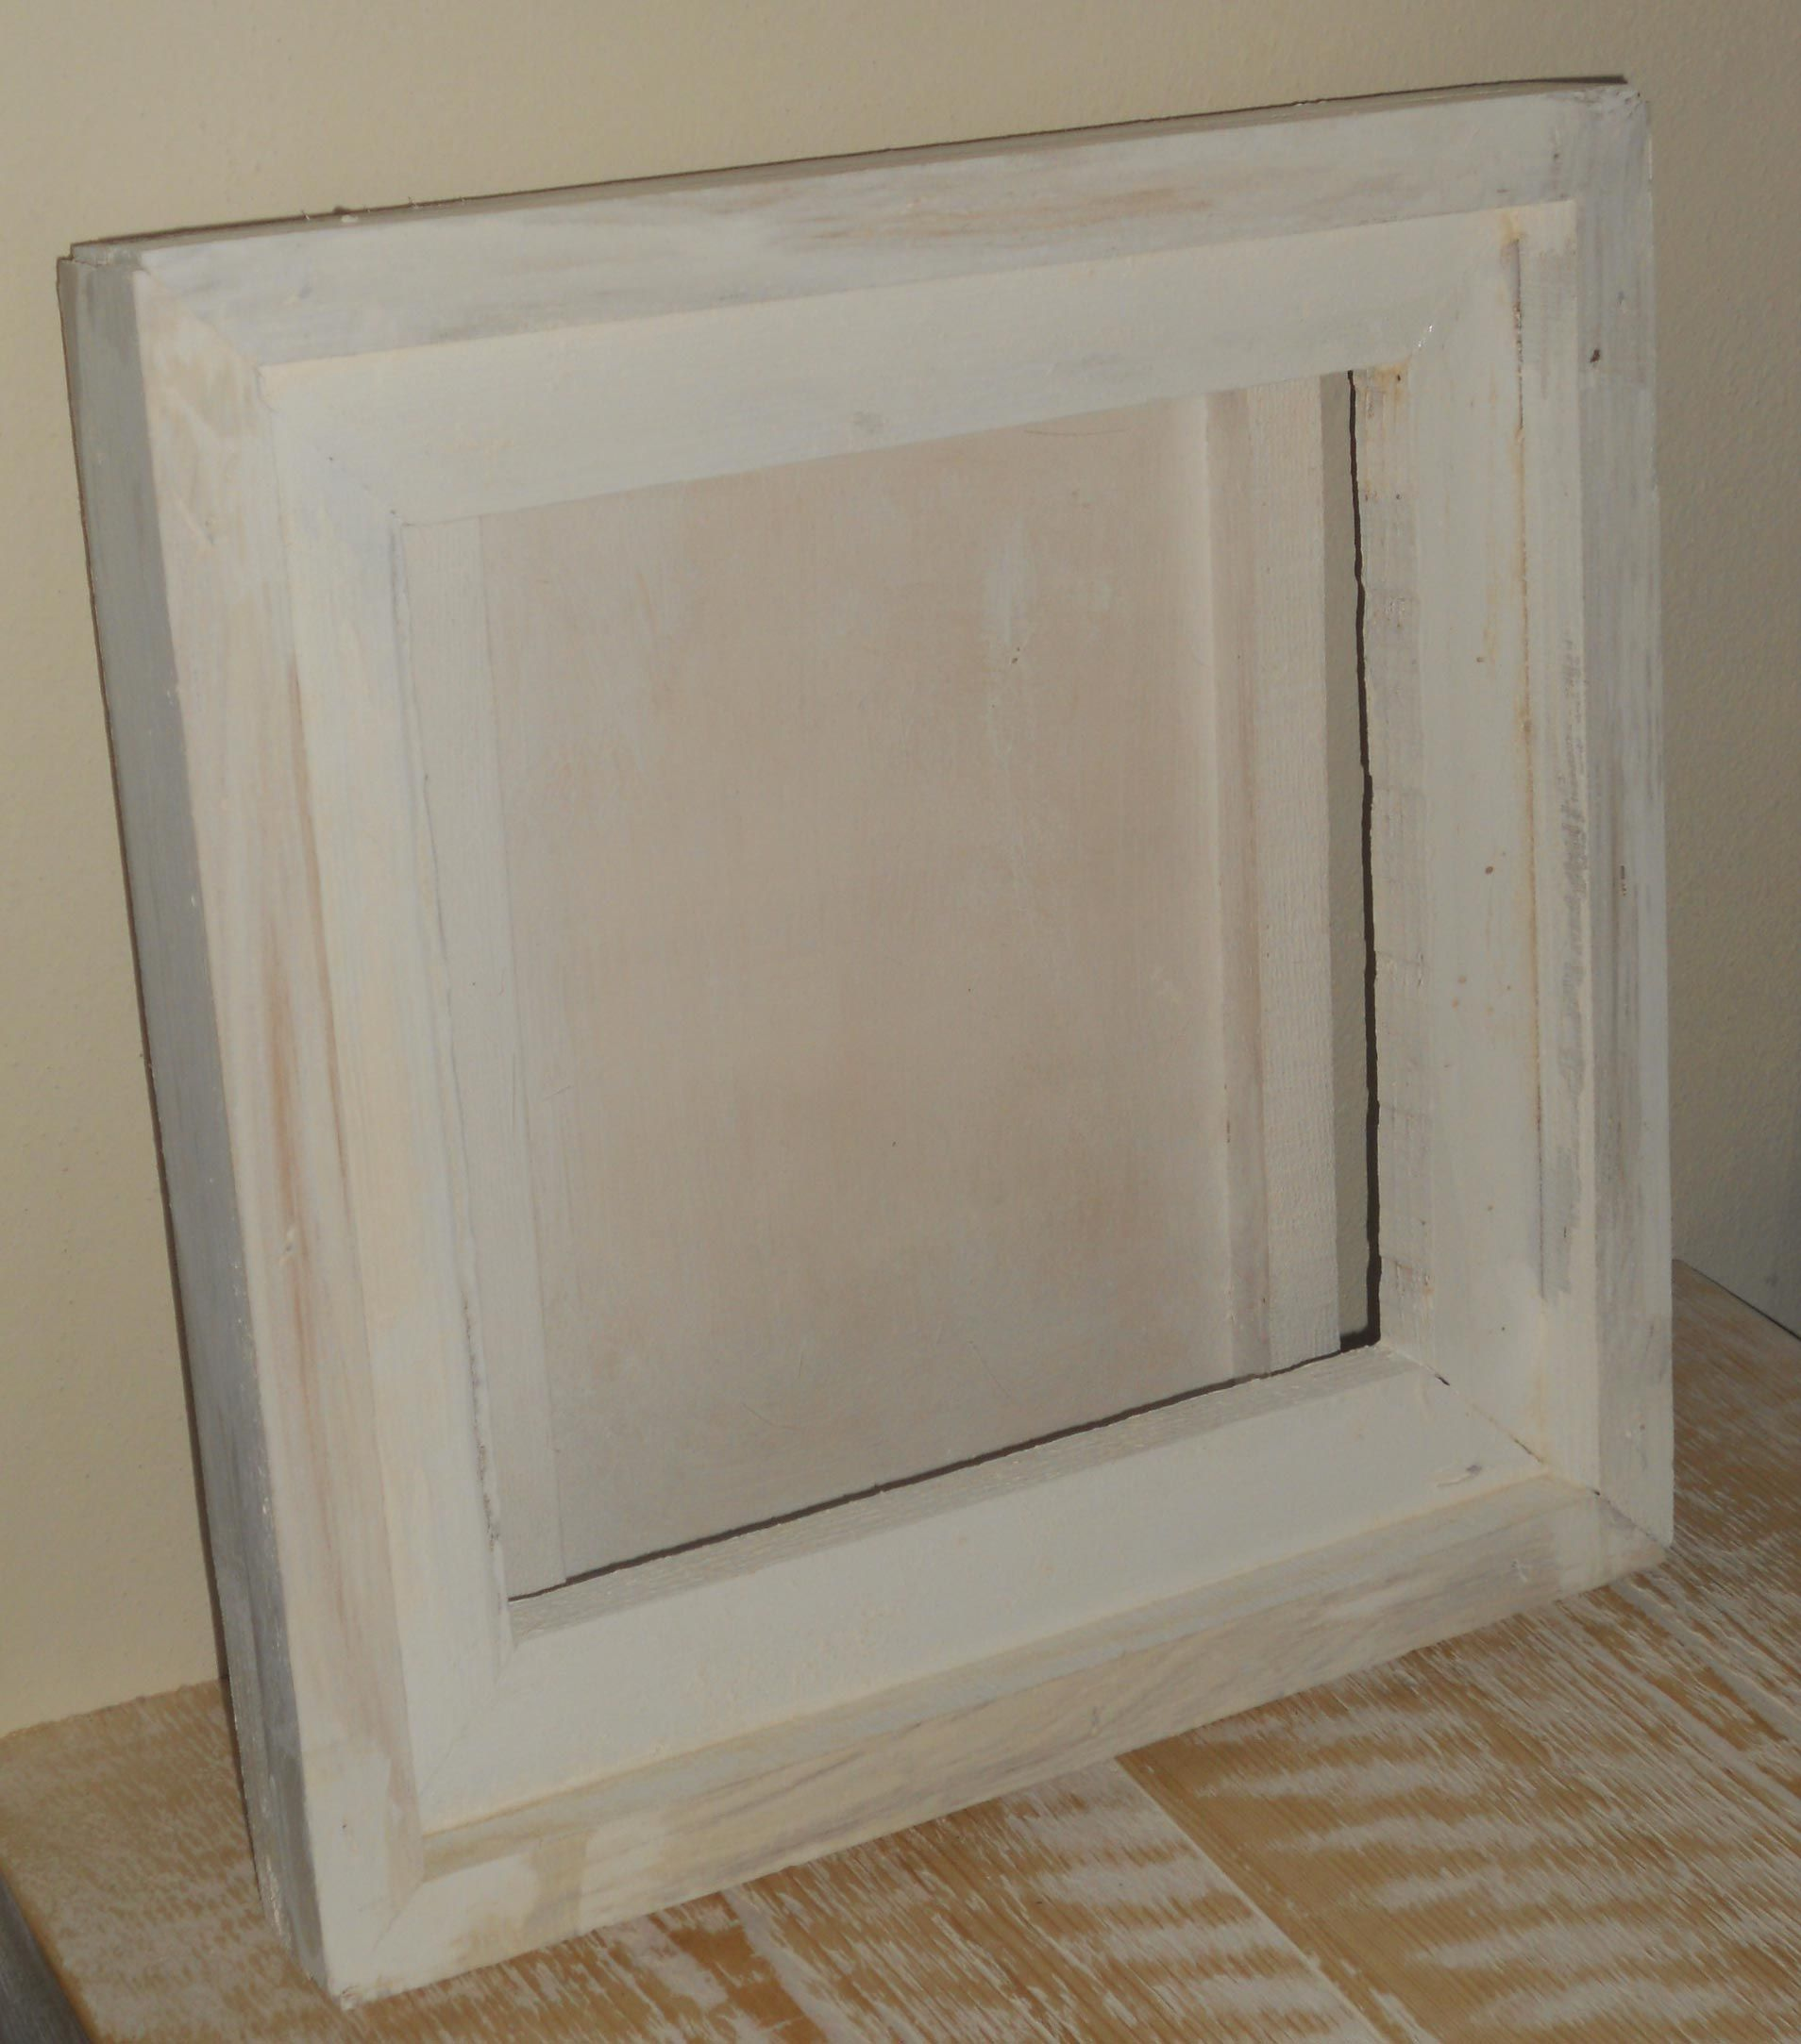 frames raw wood painted in different colors Legno grezzo